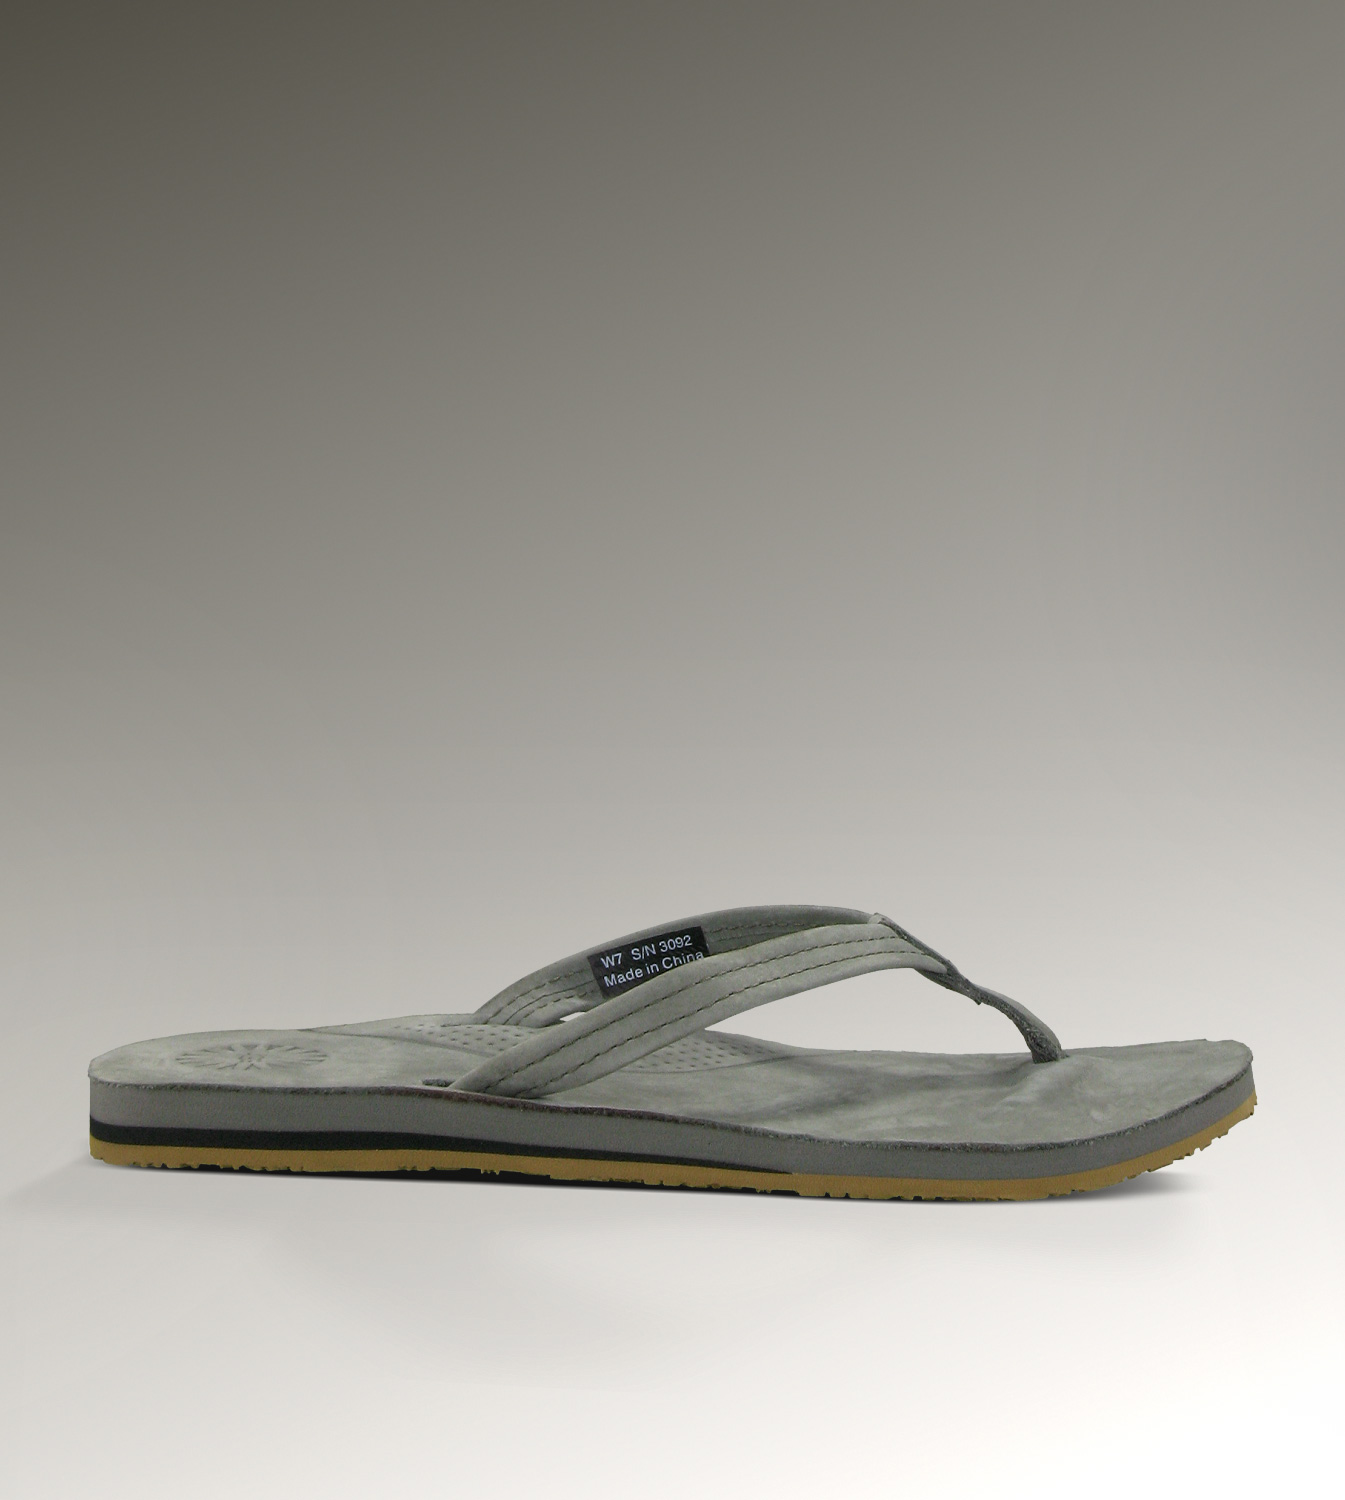 UGG Kayla 3092 Grey Sandals